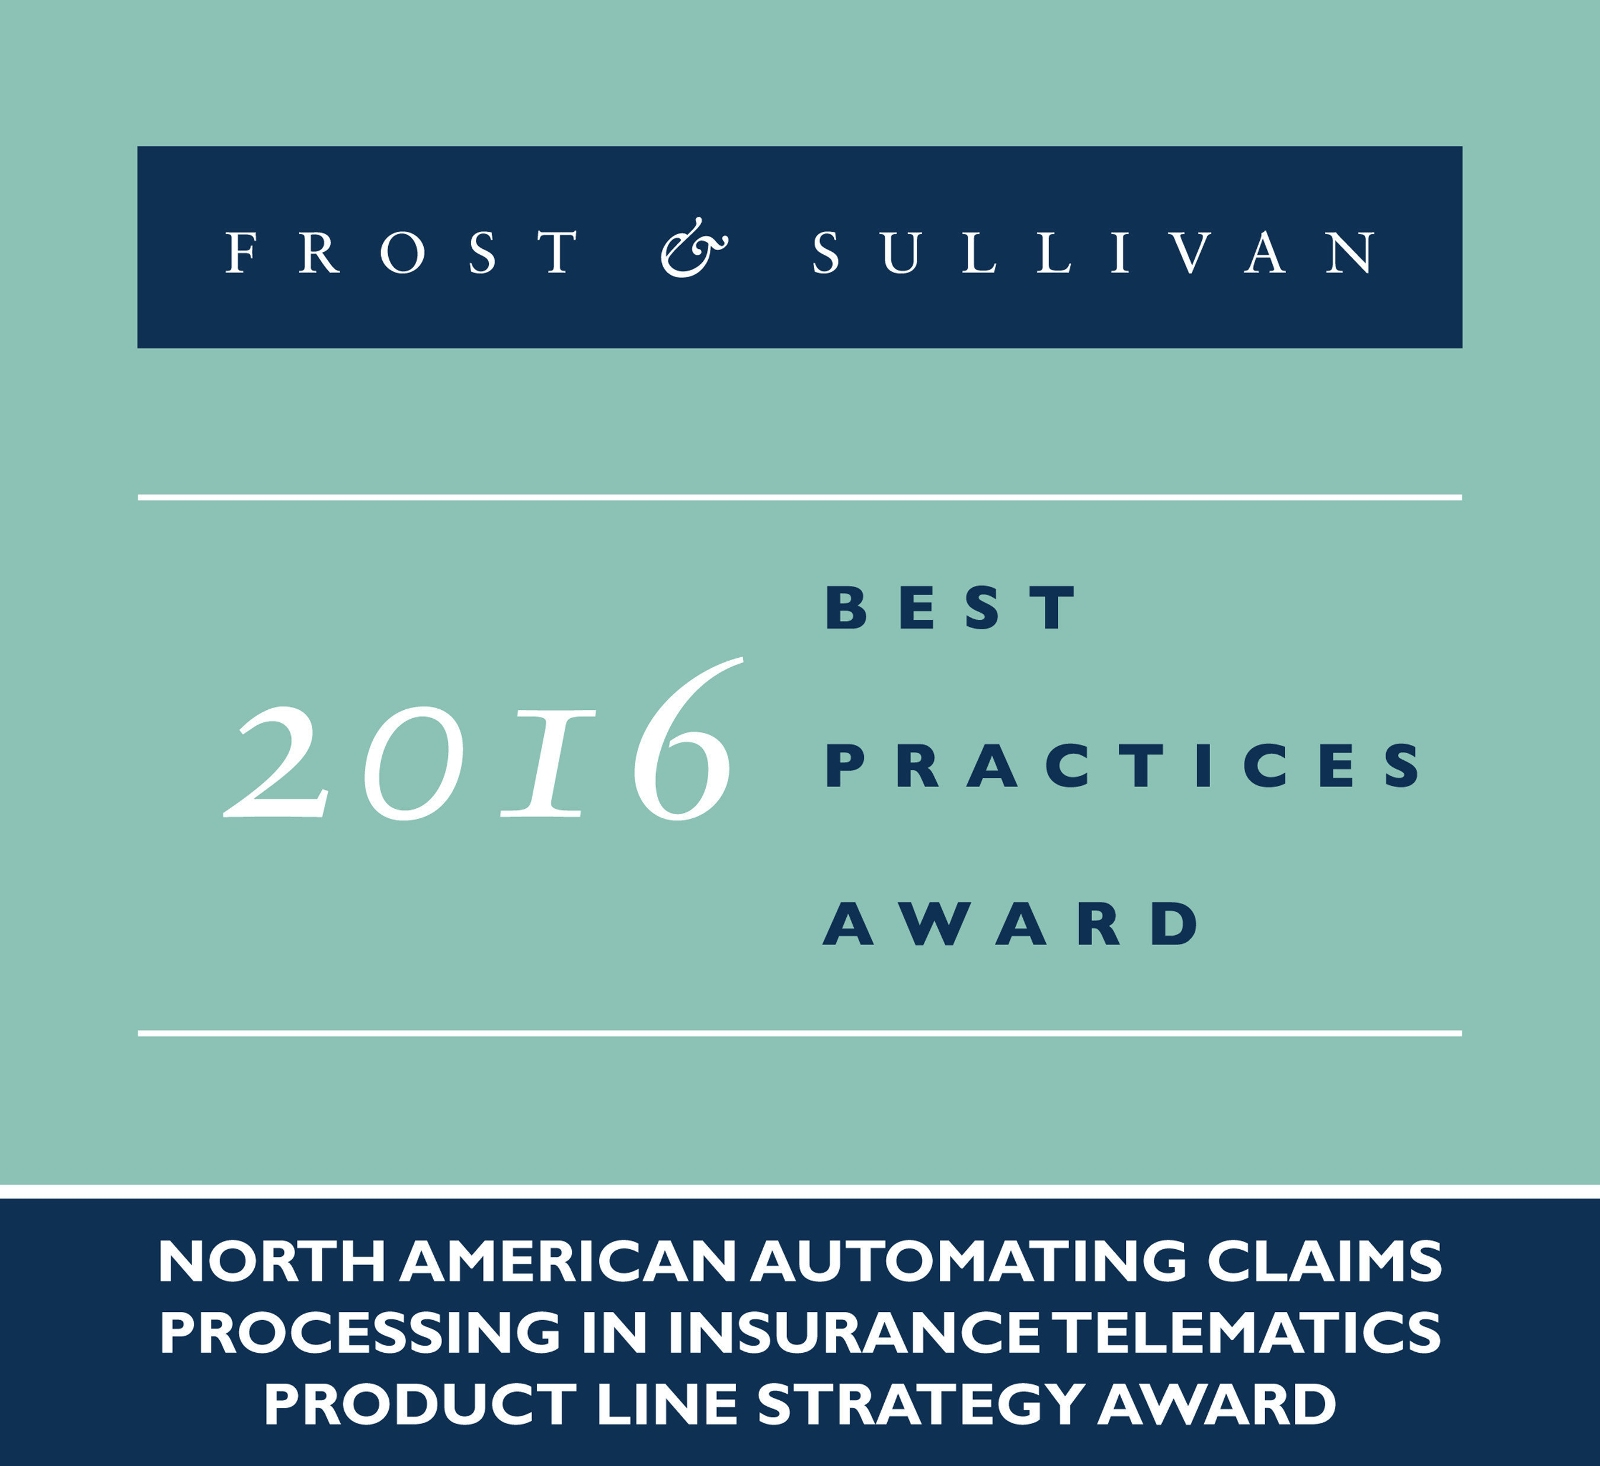 CalAmp Receives Frost & Sullivan Product Award